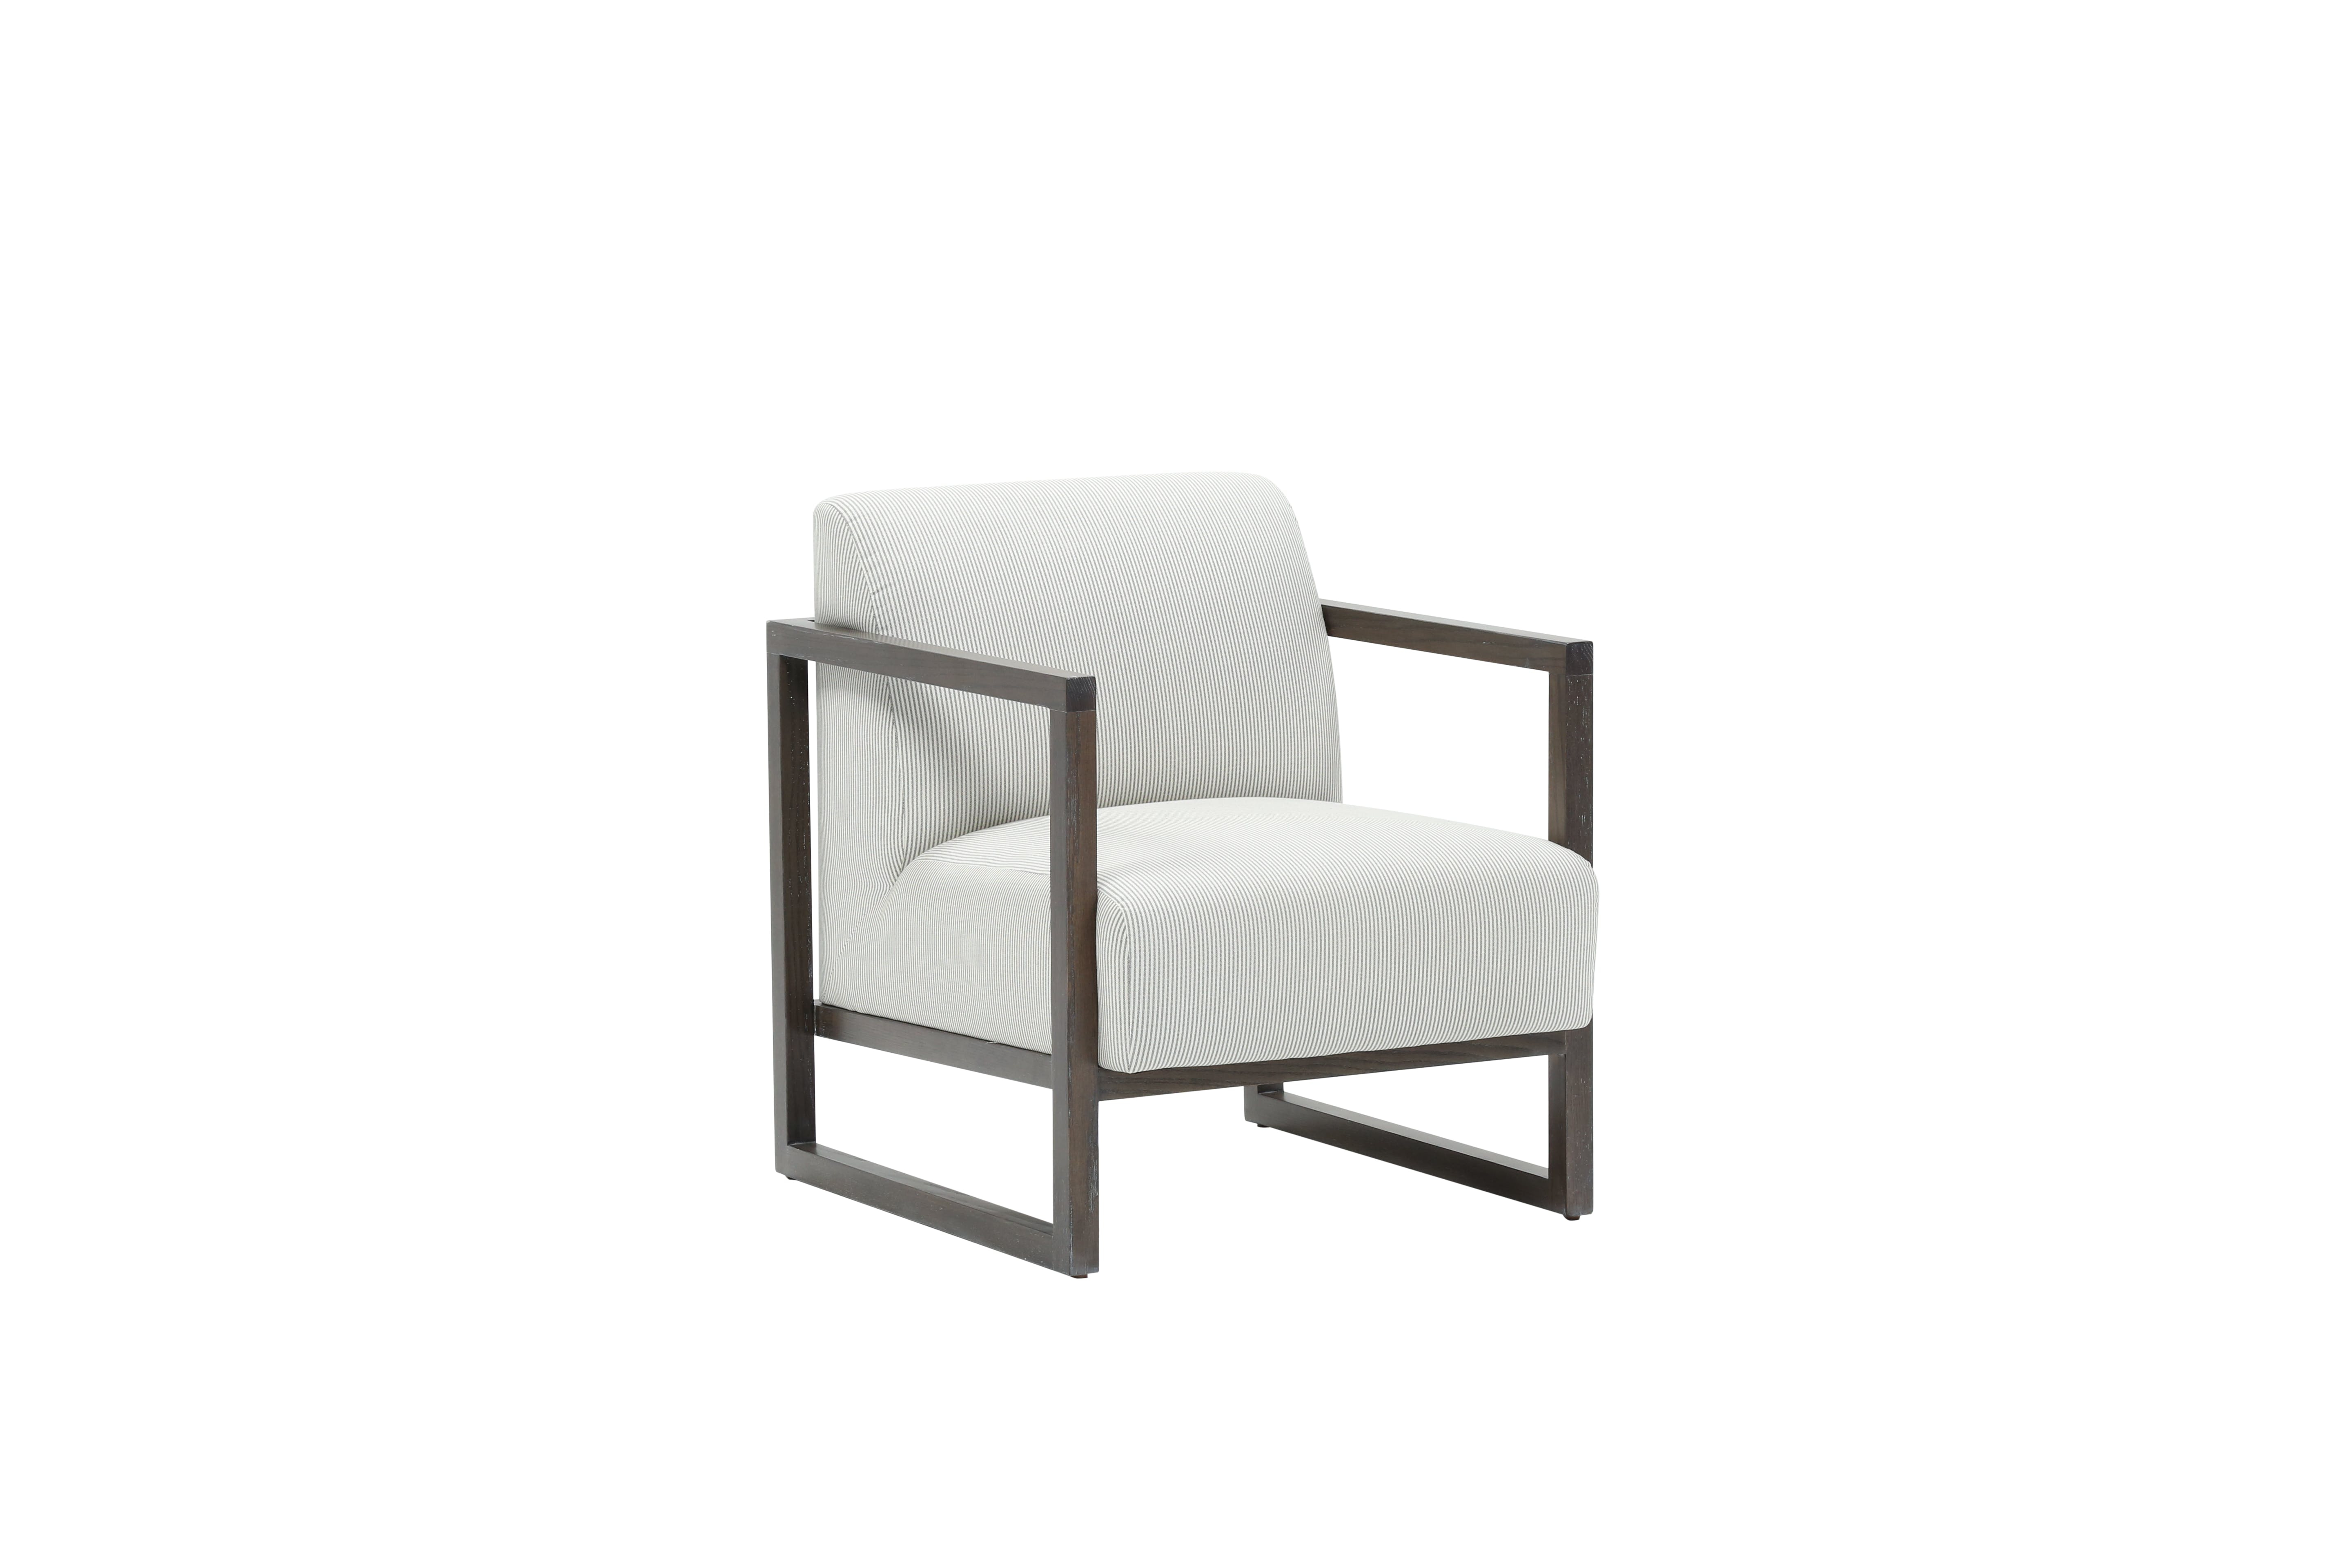 Nate Berkus Just Launched A Home Collection With Hubby Jeremiah Within Matteo Arm Sofa Chairs By Nate Berkus And Jeremiah Brent (Image 14 of 20)